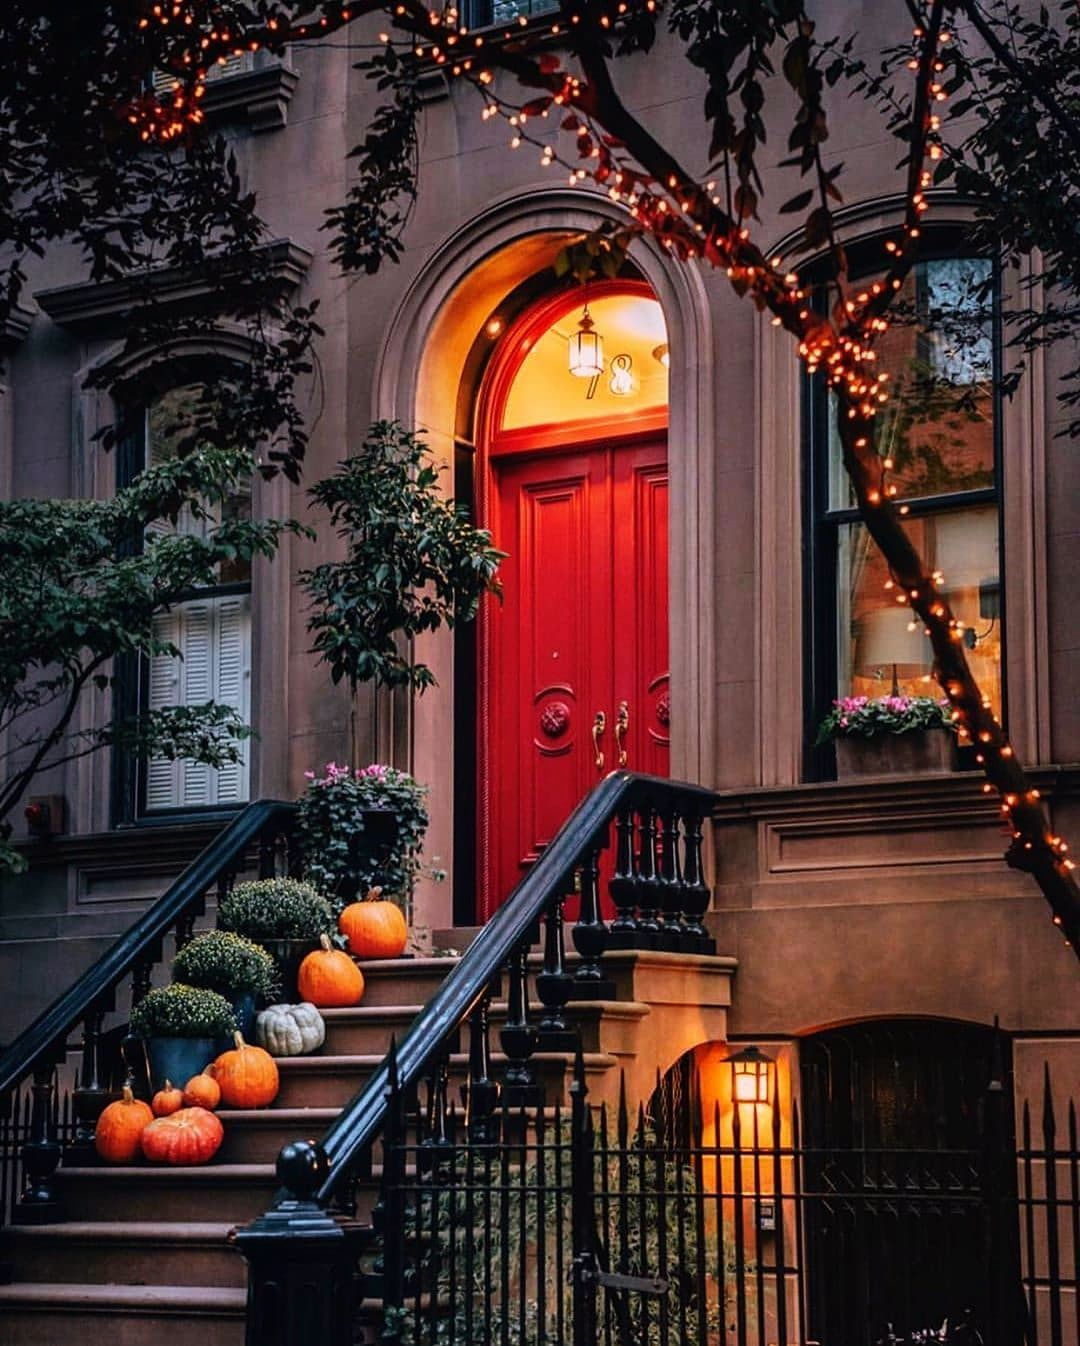 Christmas Things To Do In Upstate Ny 2020 20 Awesome Farmhouse Christmas Ideas in 2020 | Halloween porch